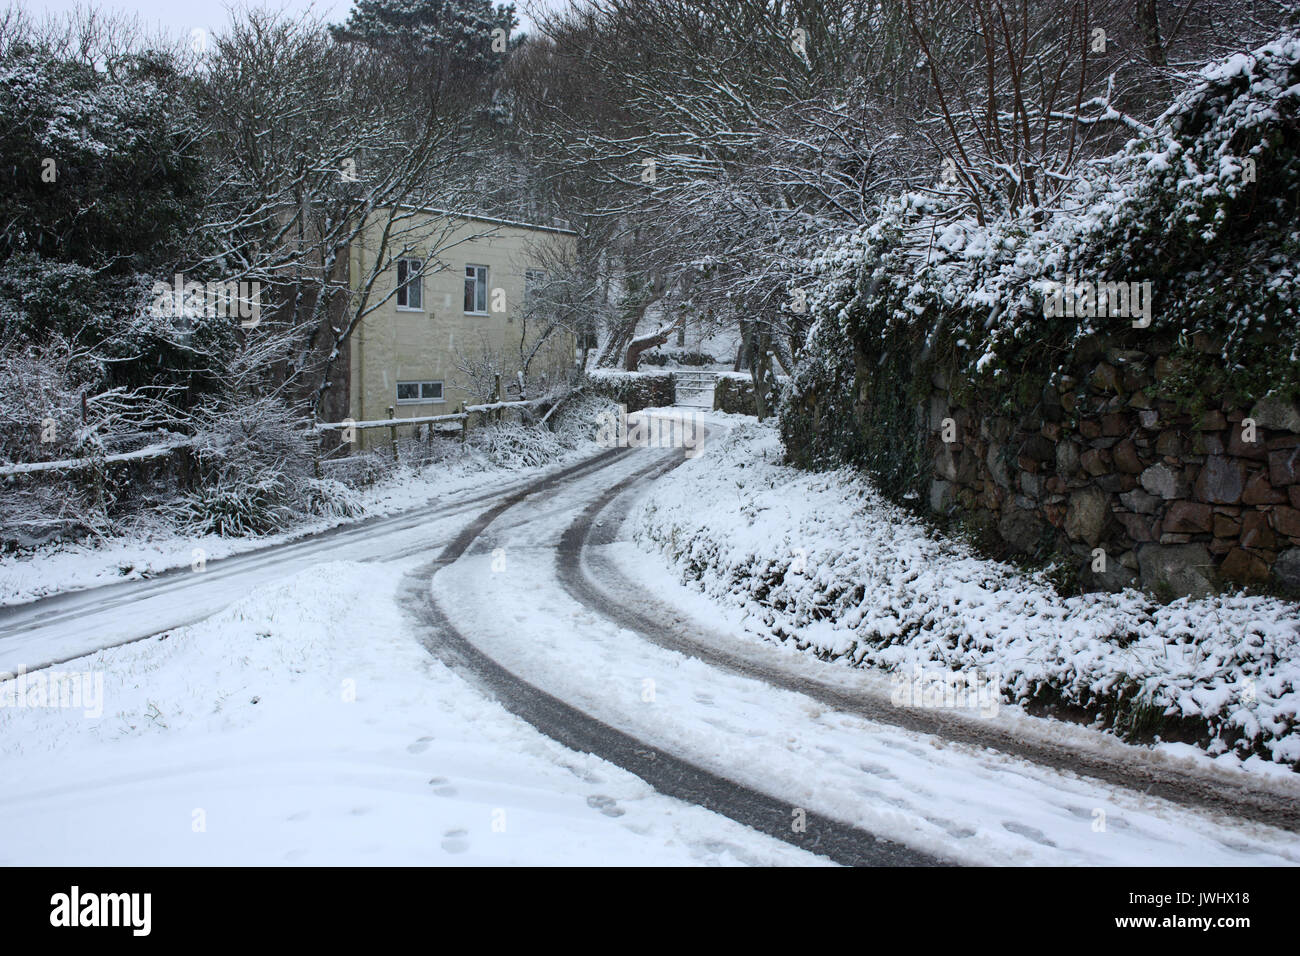 British Channel Islands. Alderney. Winter scene of cottage and snow-covered country lane. - Stock Image